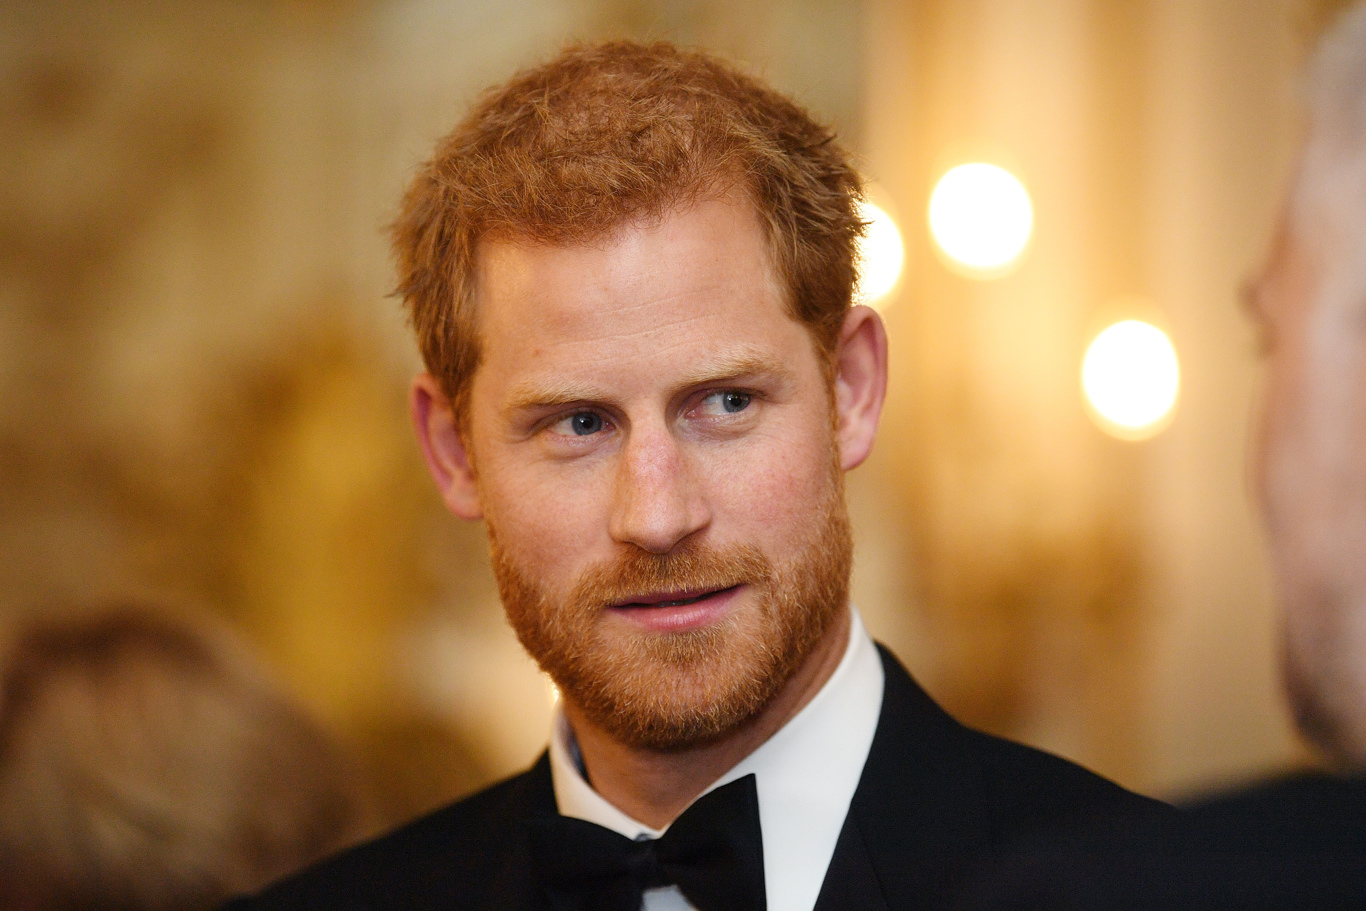 Prince Harry100 Women in Finance reception, Victoria and Albert Museum, London, UK - 11 Oct 2017100 Women in Finance reception and gala dinner in aid of the WellChild charity